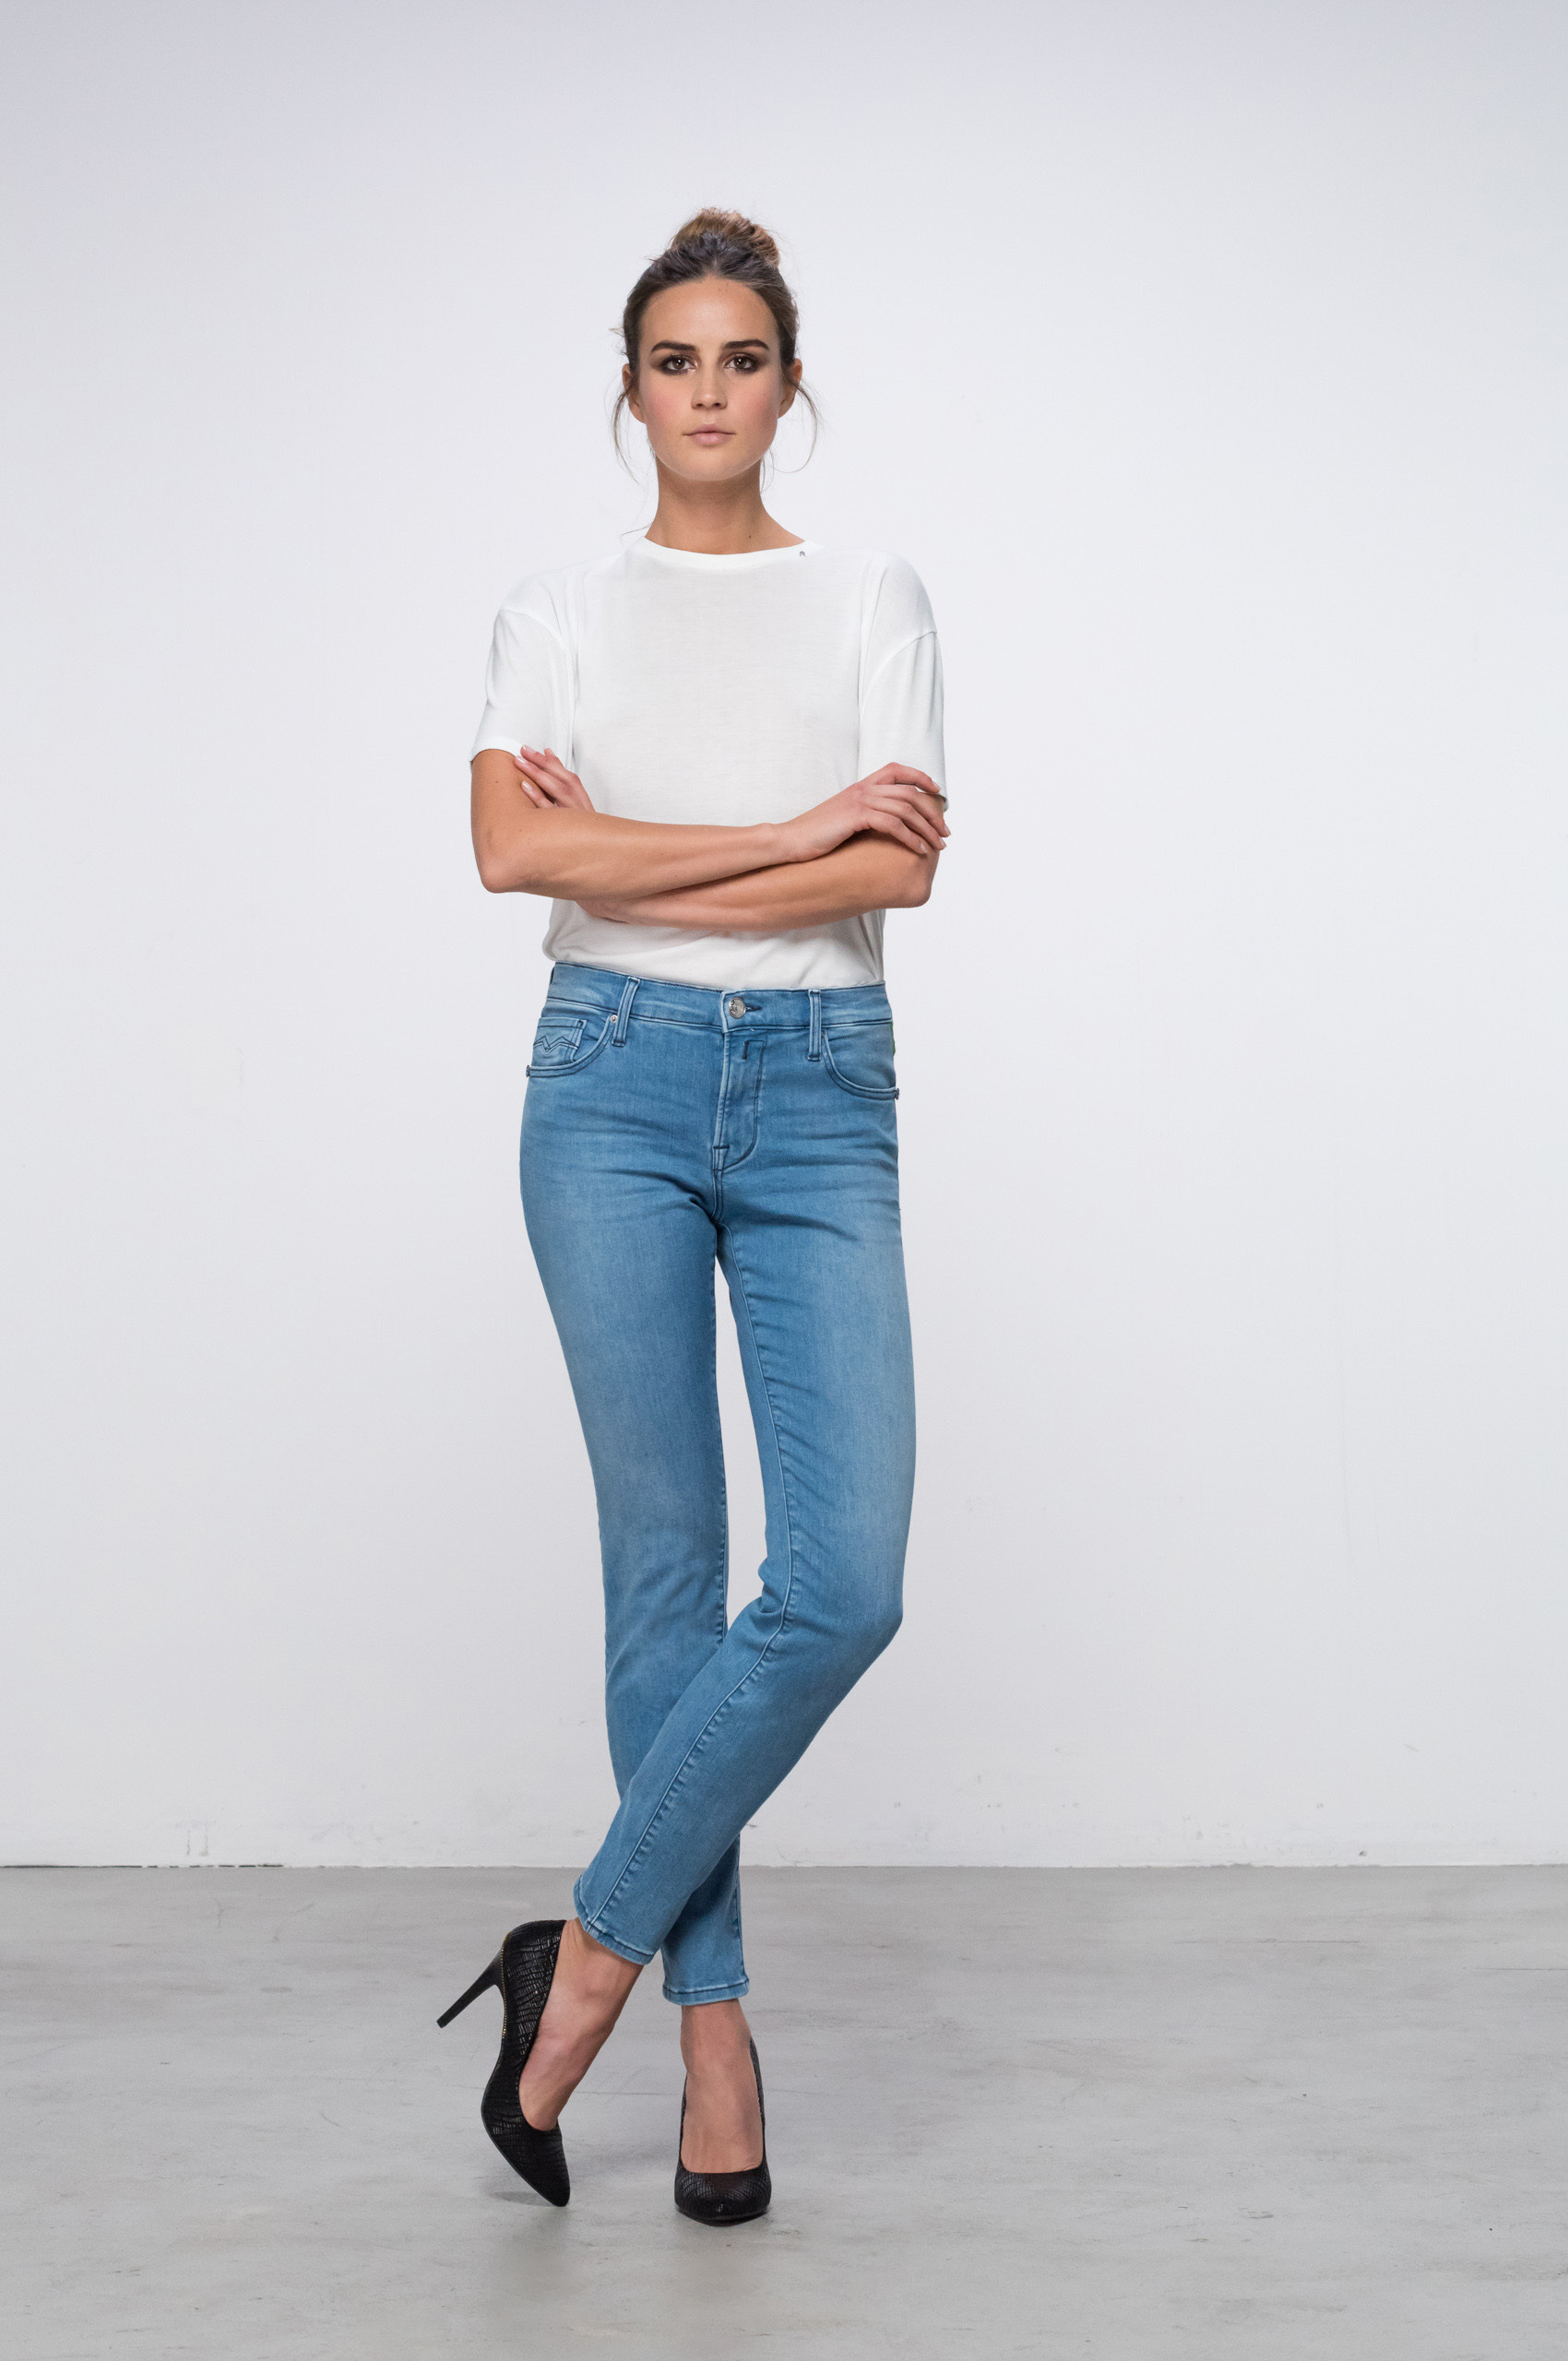 skinny jeans fit guide women